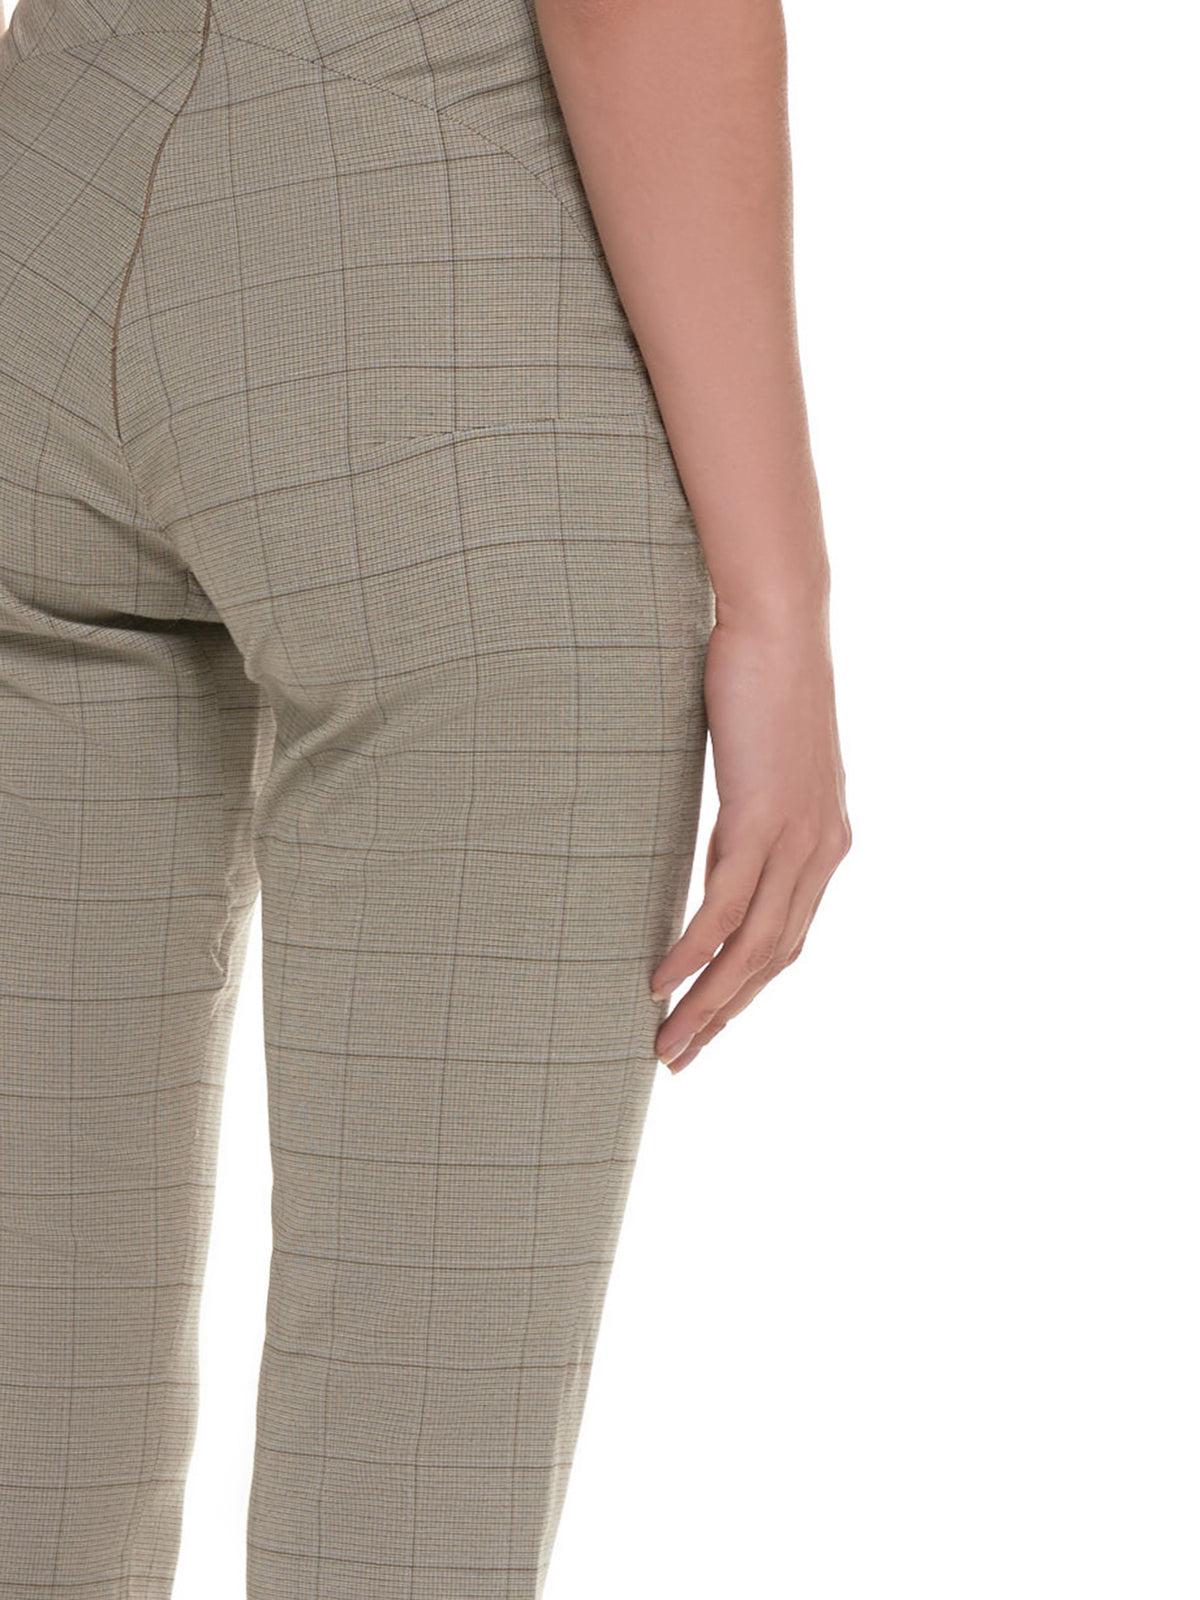 Charlotte Knowles Trousers | H.Lorenzo - detail 2